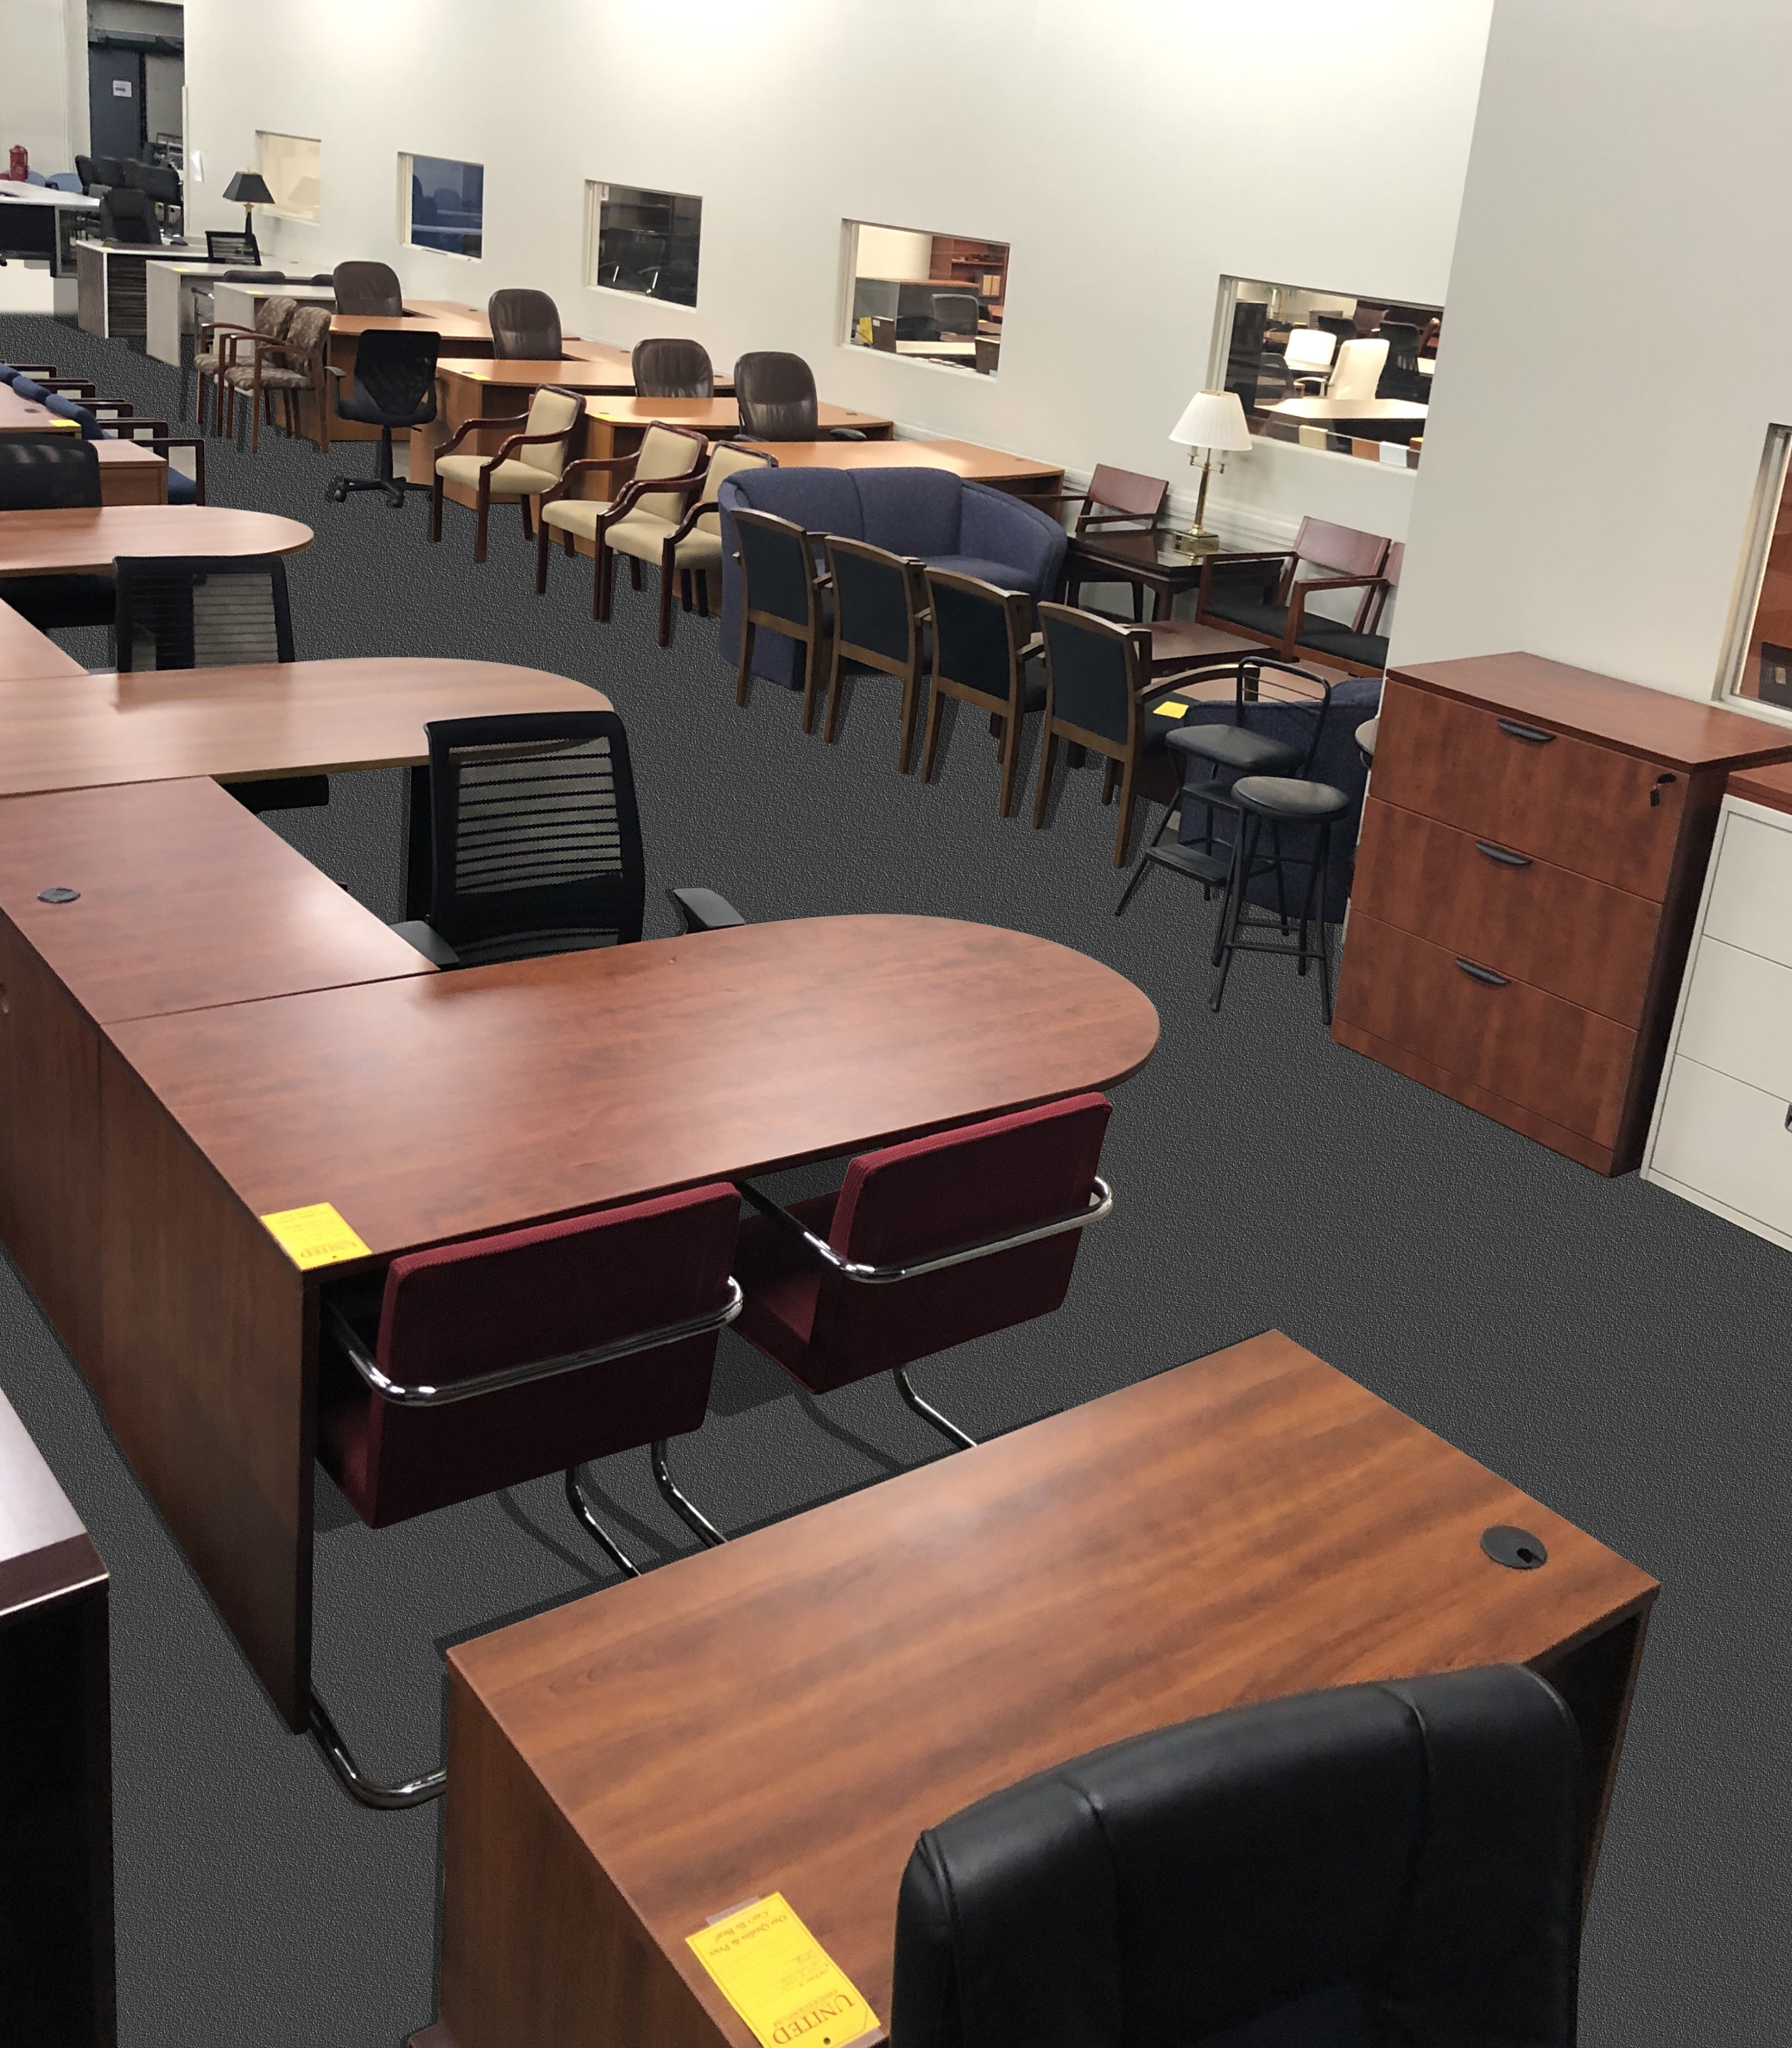 Office Furniture Us: At United Office Furniture, We